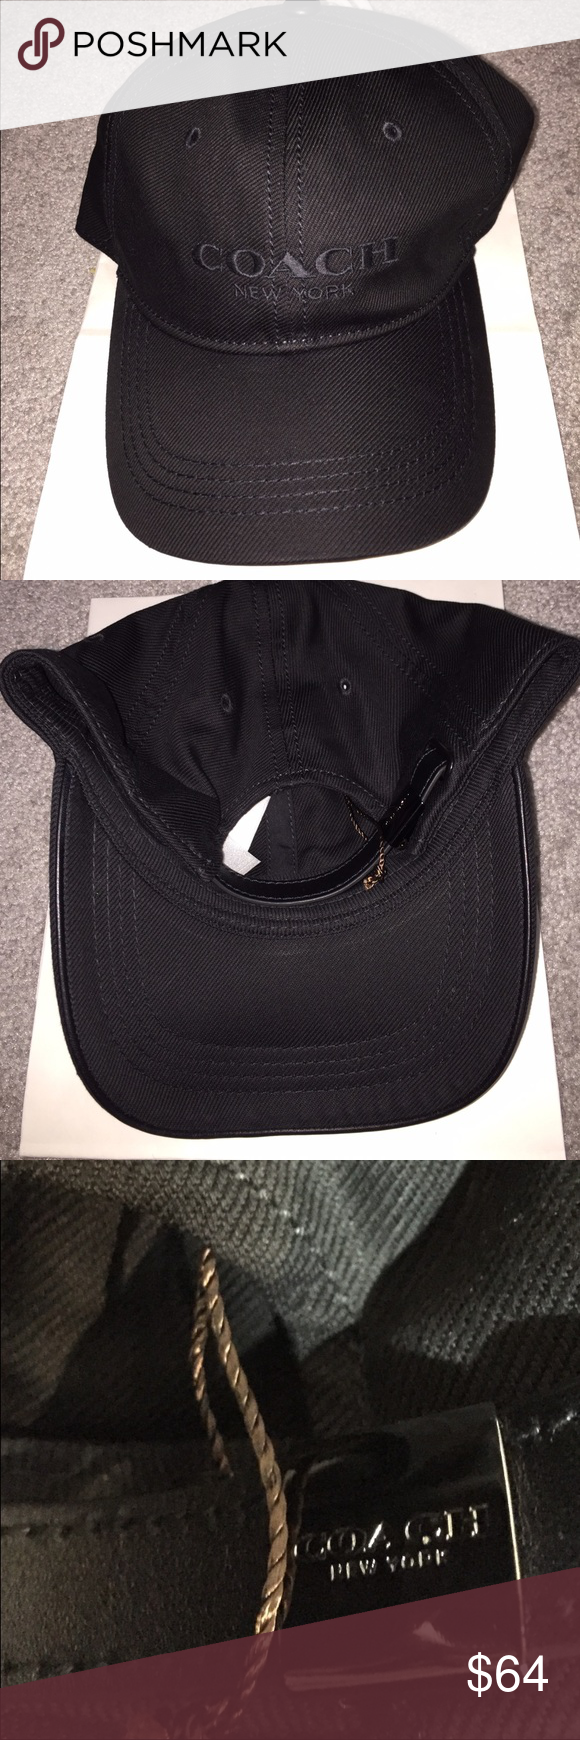 COACH LOGO BBALL HAT BLACK NWT COACH LOGO BBALL HAT BLACK NWT. NO TRADES. MSRP $75.00.  🔴PRICES NOT DISCUSSED IN COMMENTS. Coach Accessories Hats